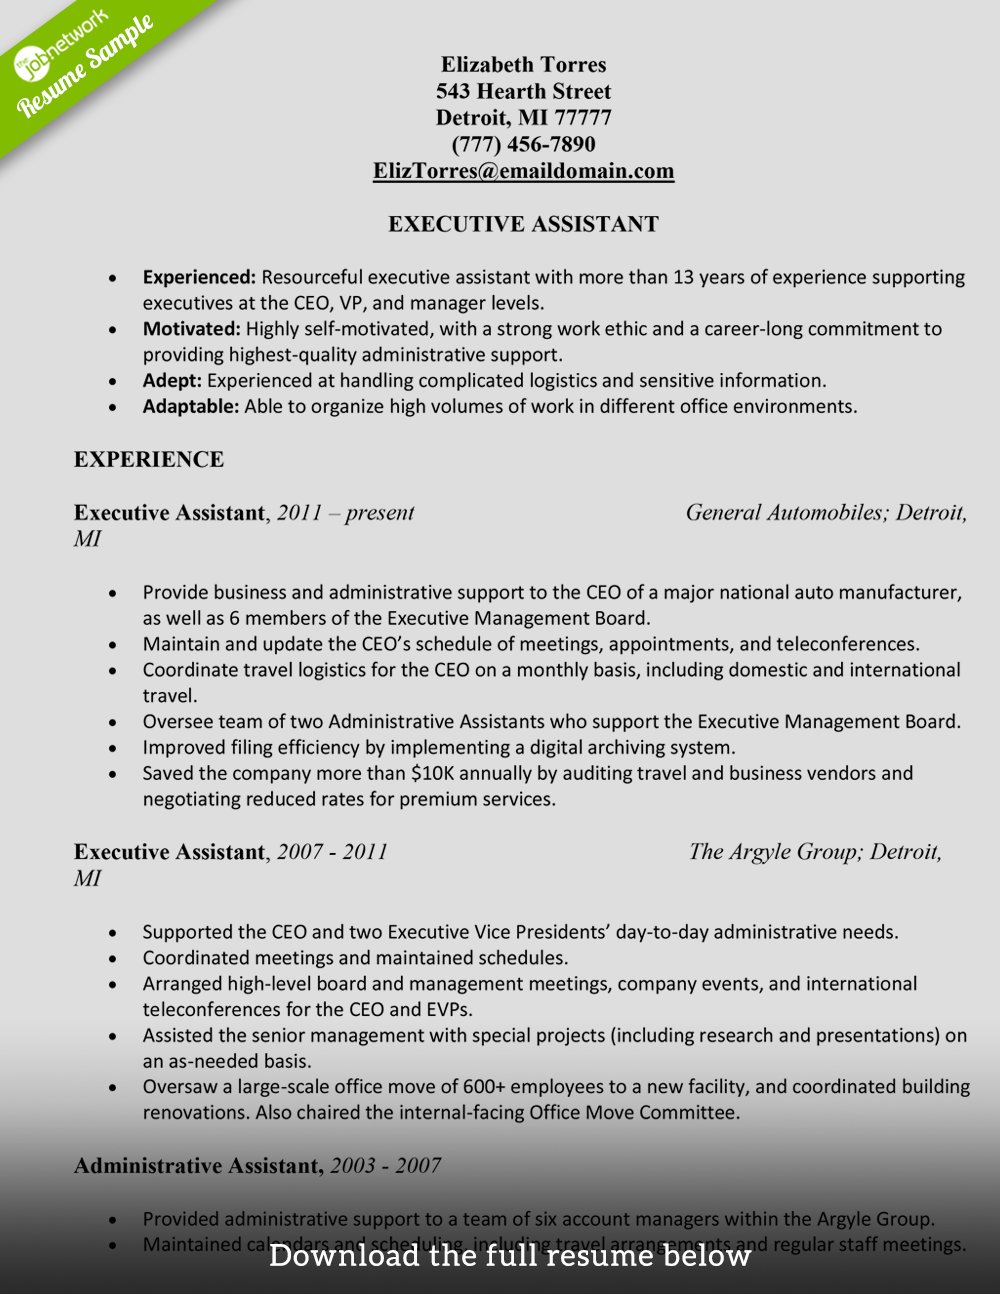 administrative assistant resume elizabeth torres - Office Assistant Resume Sample